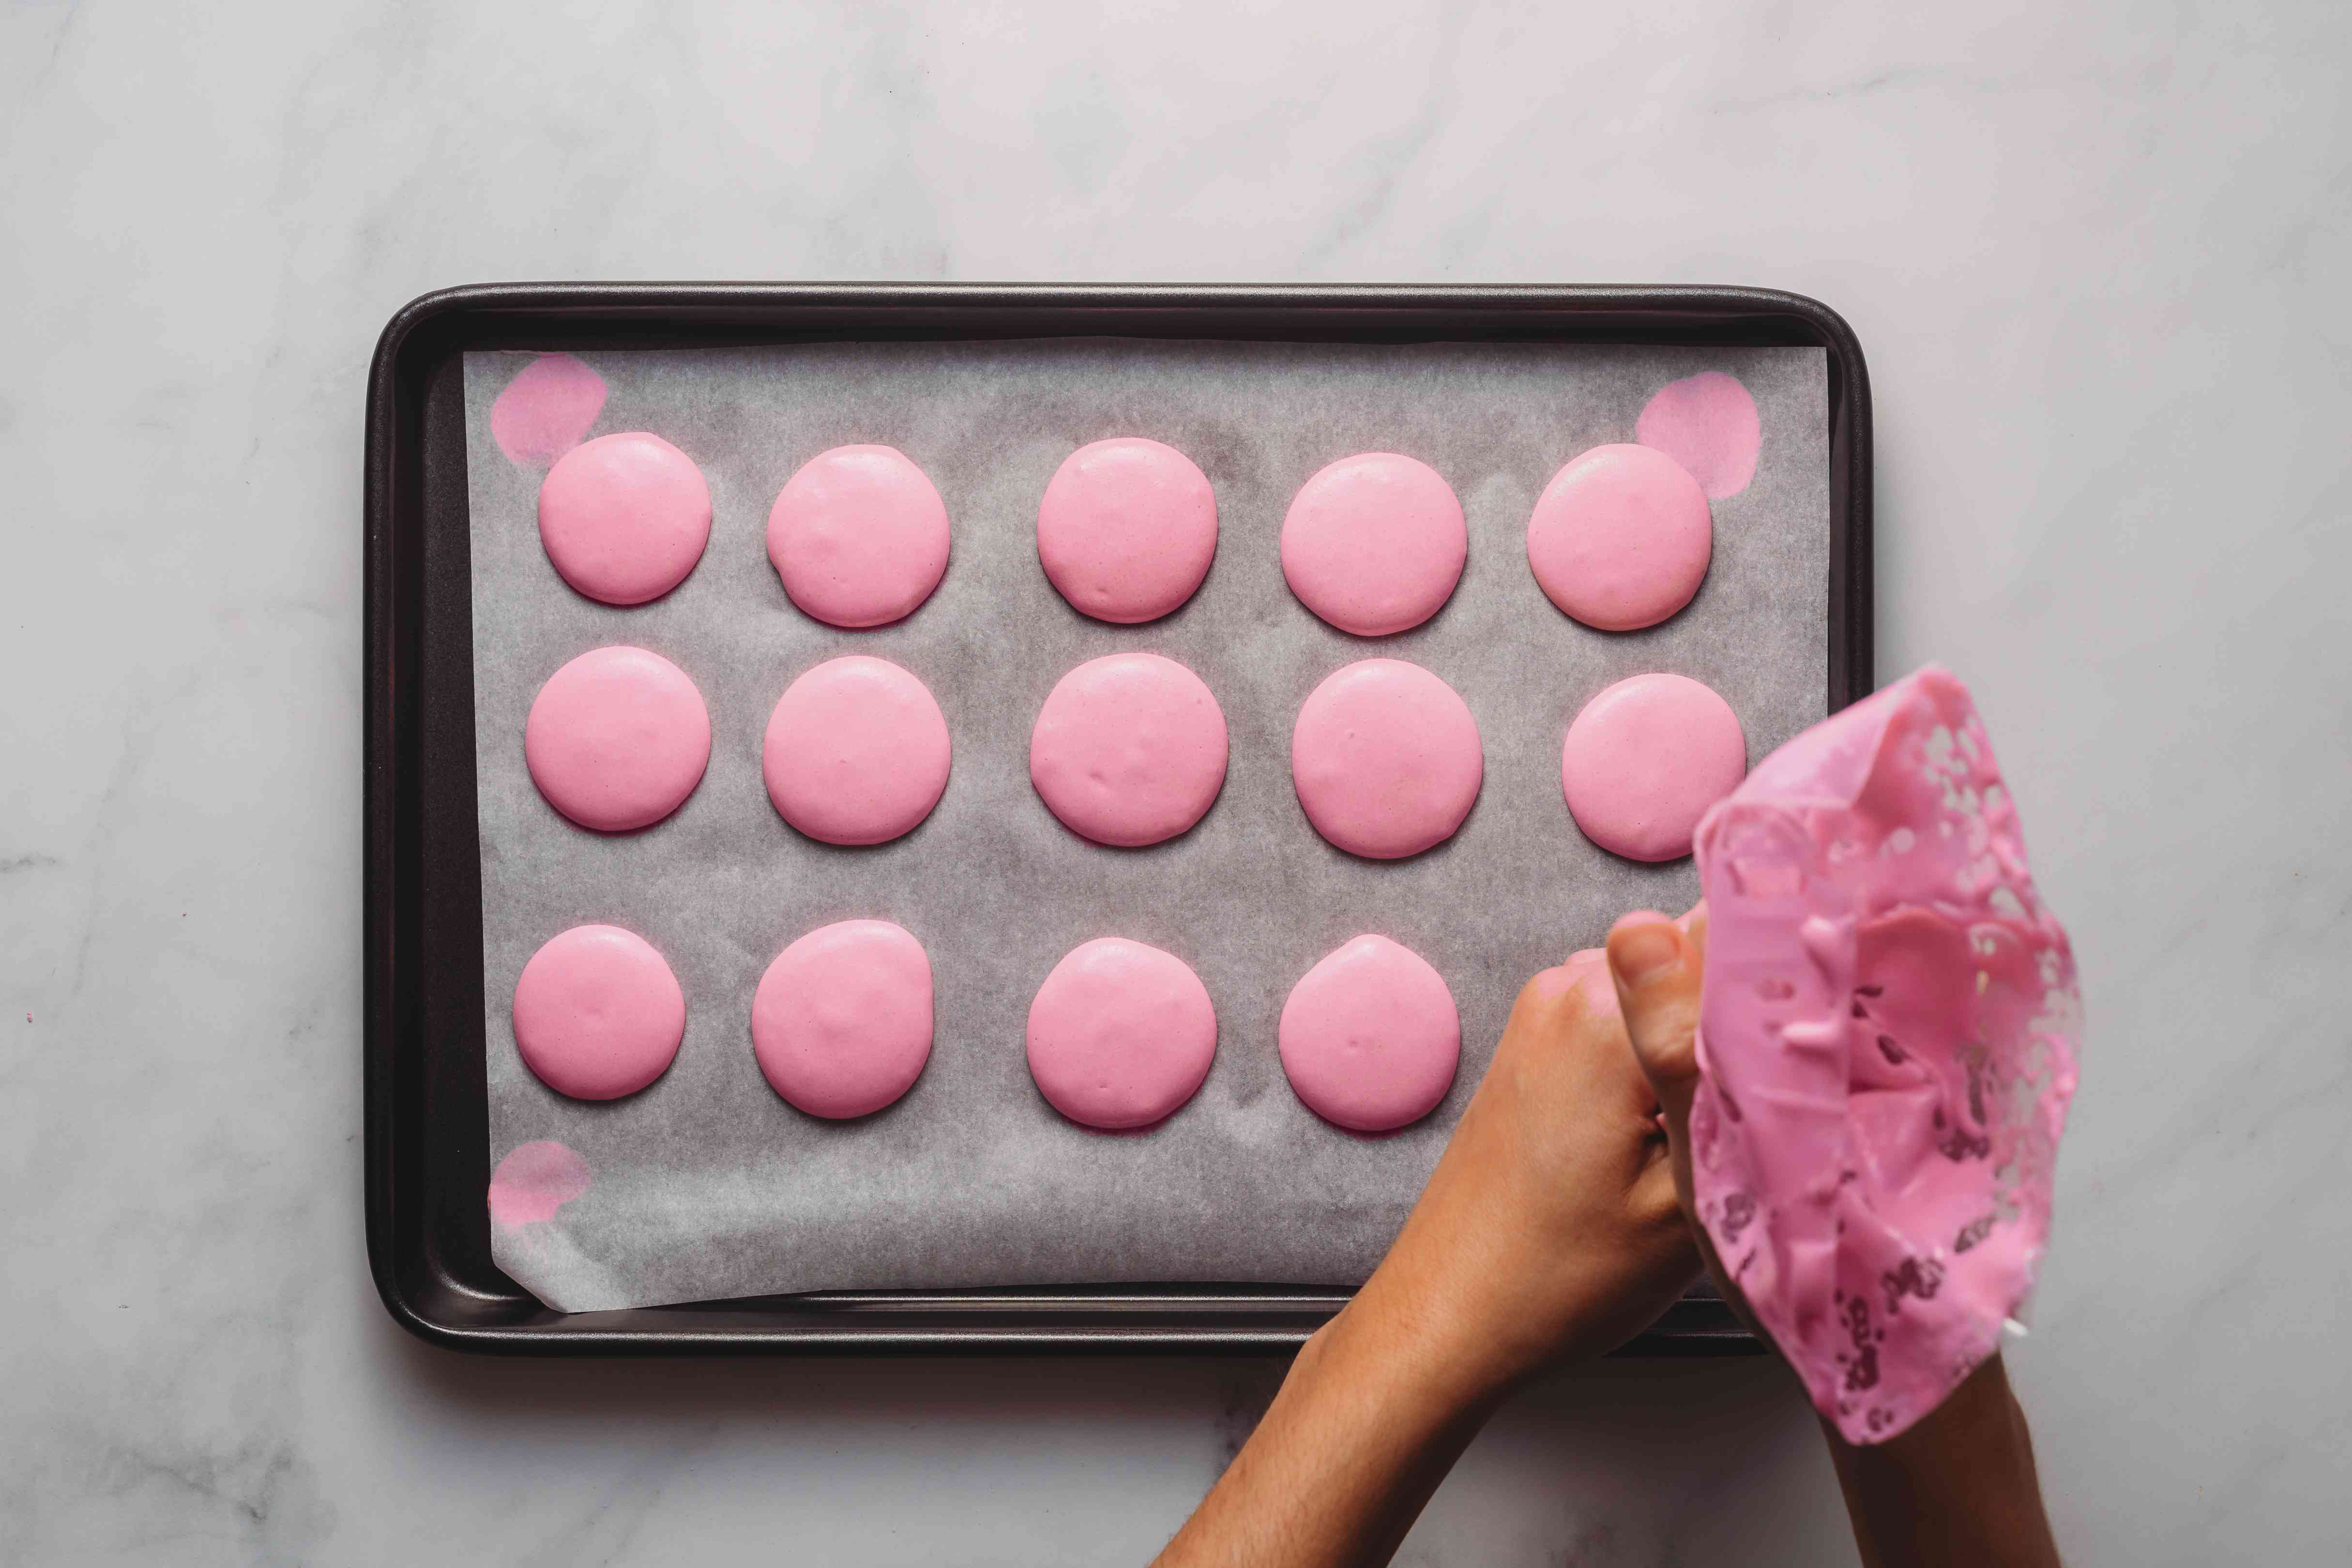 meringue piped on a baking sheet